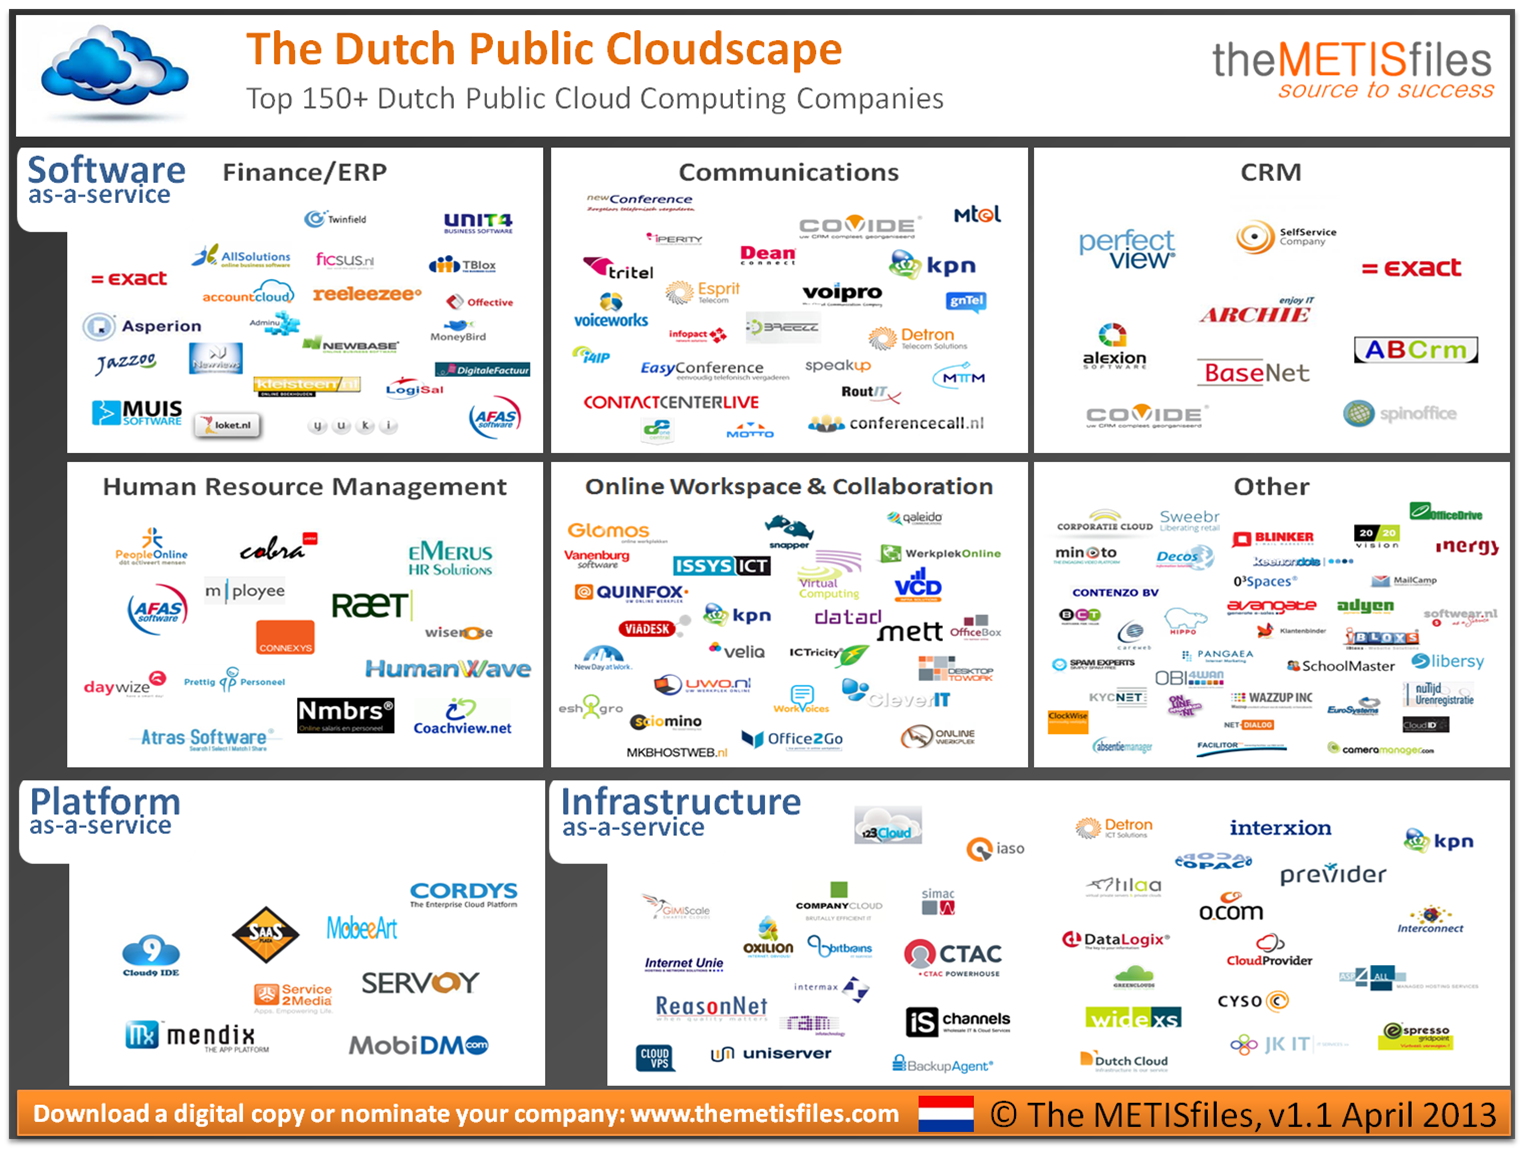 The METISfiles Dutch Public Cloudscape v1.1